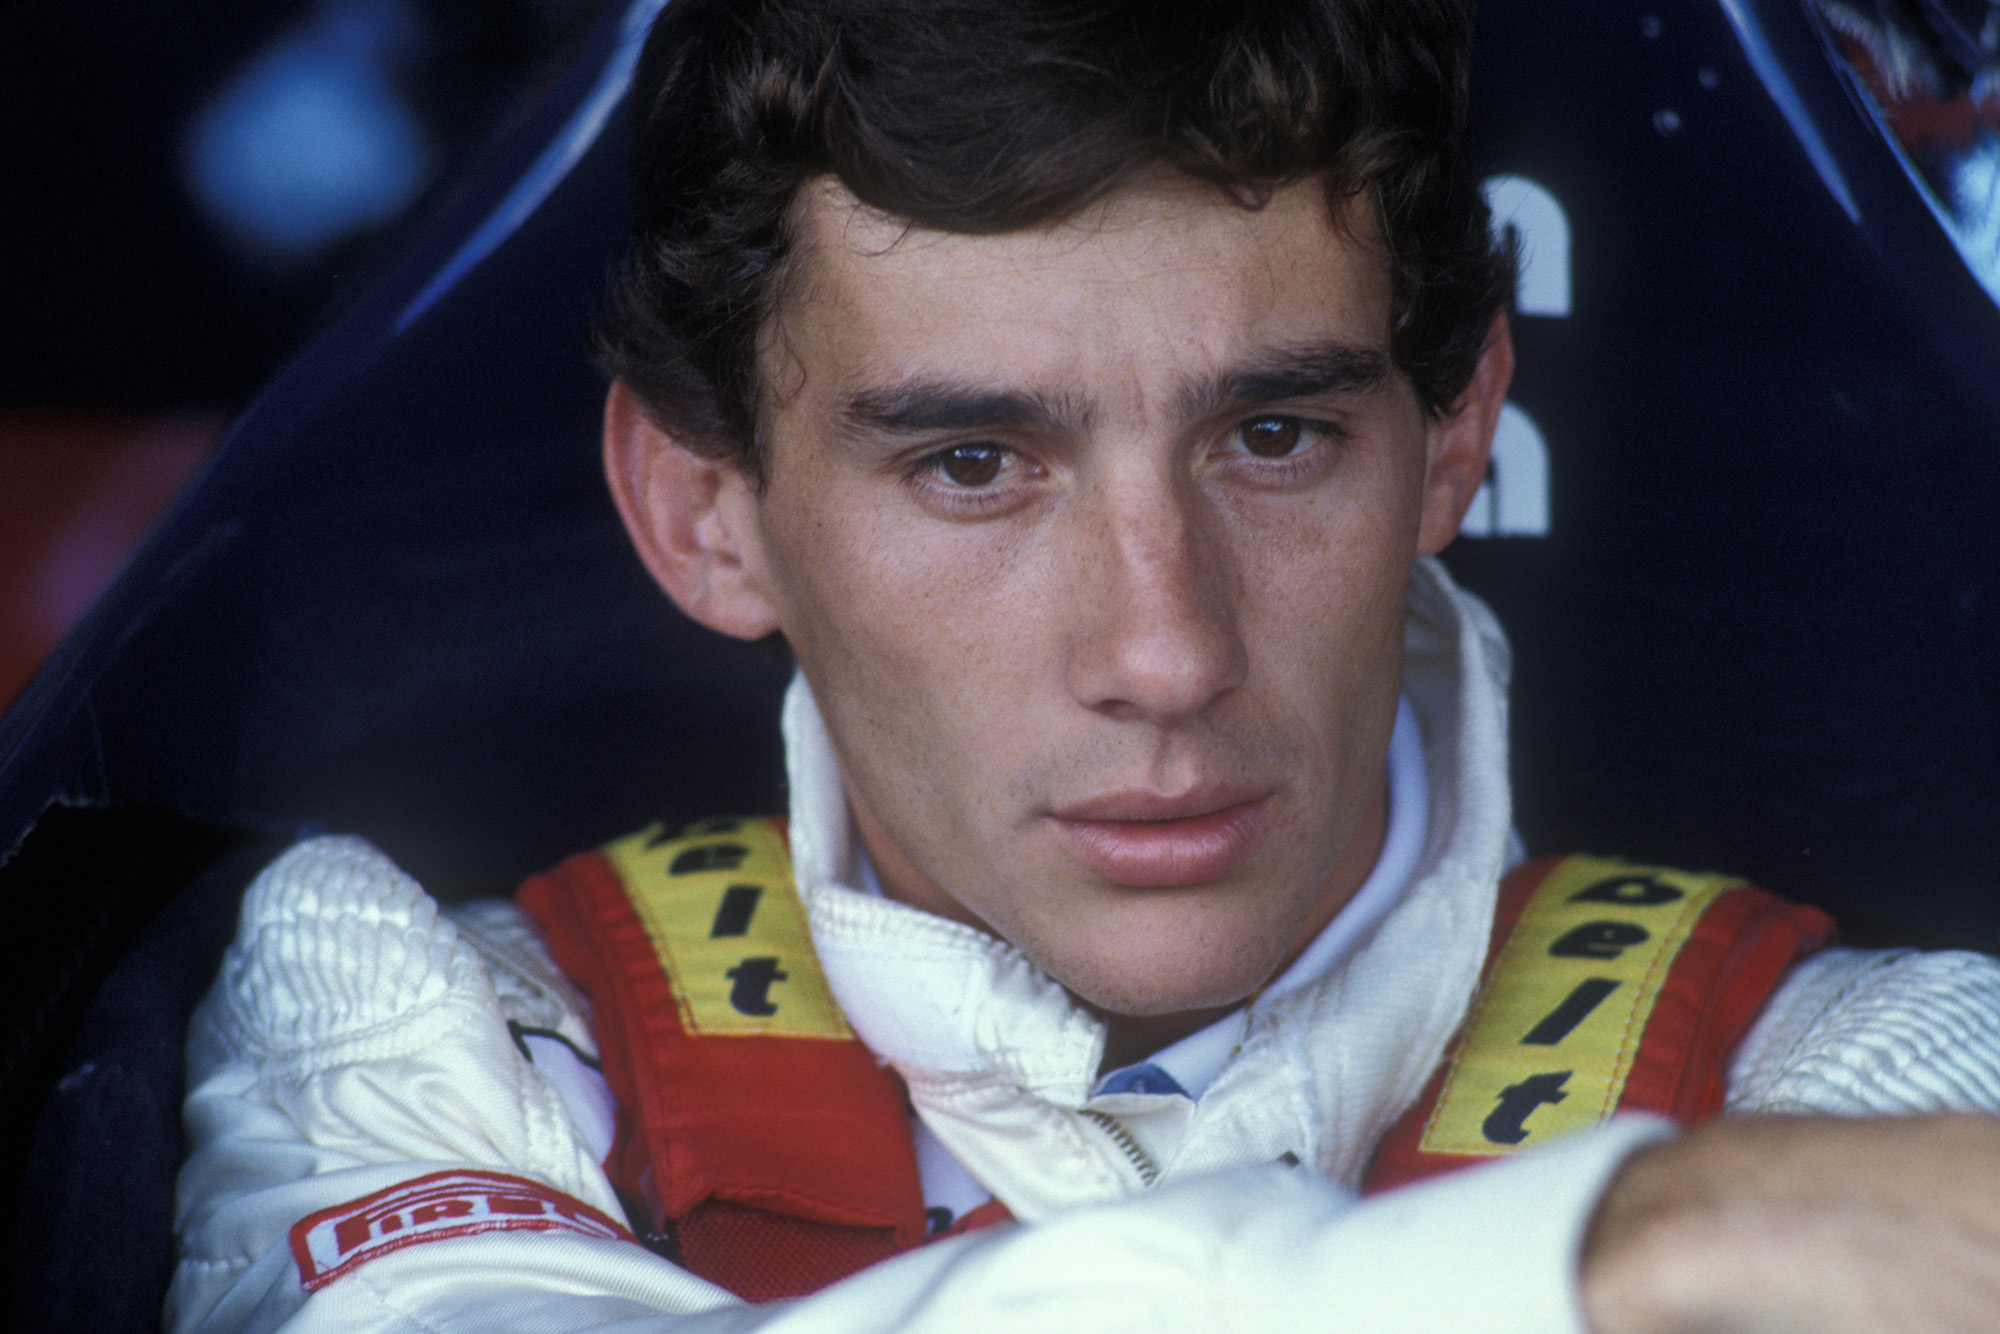 3. Senna before the 1984 Brazilian Grand Prix GPPjpg